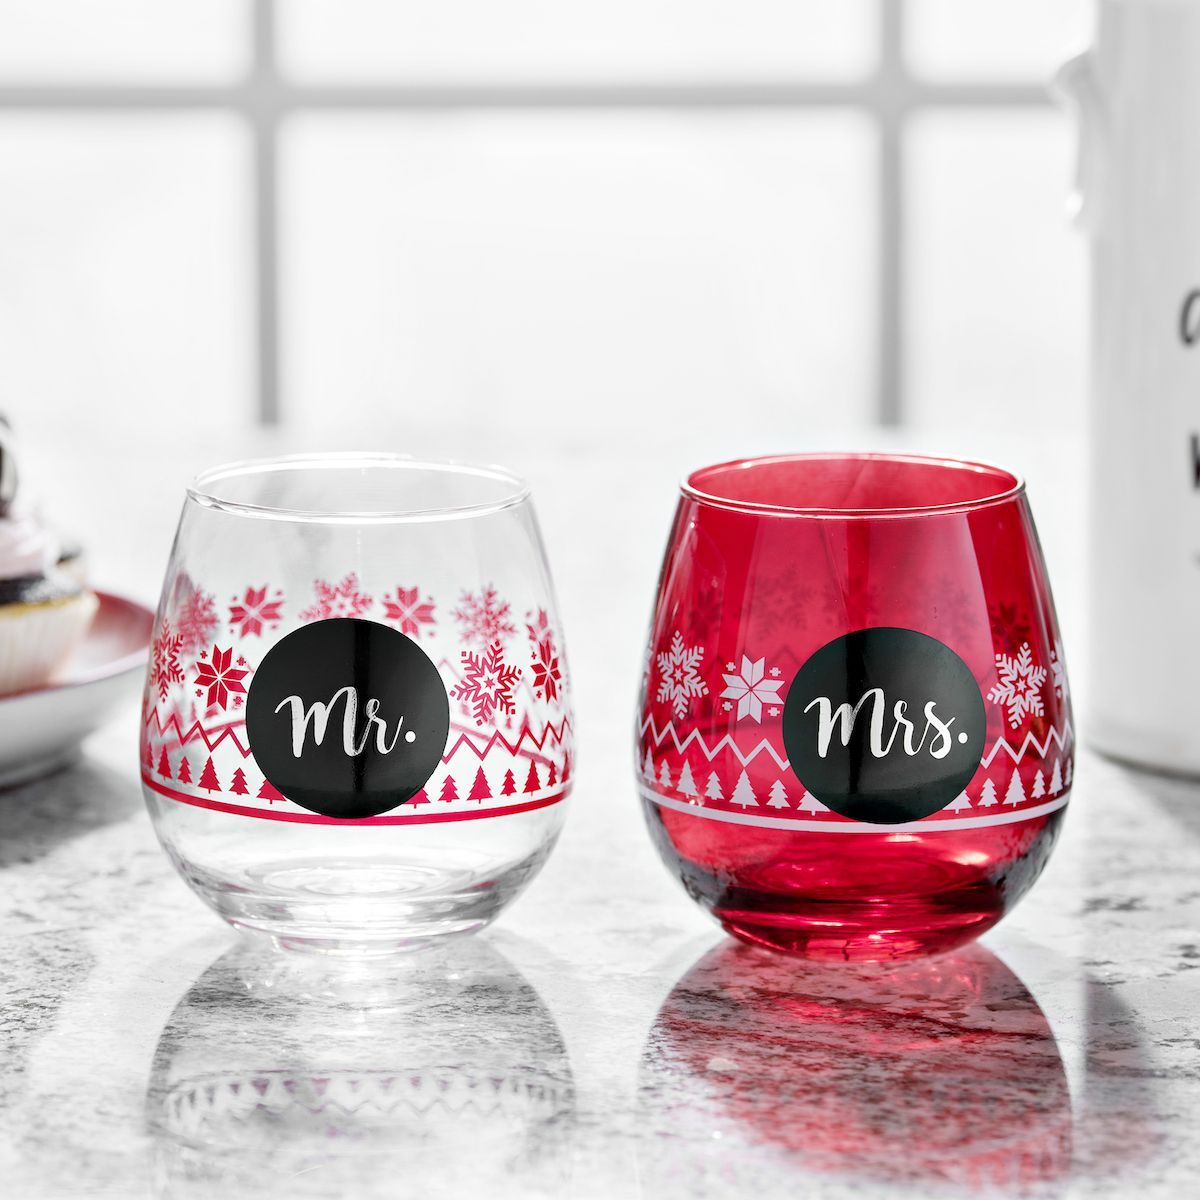 Date Night Just Got A Whole Lot More Fun Grab A Bottle Of Wine And These Festive Glasses For Christmas Glasses Stemless Wine Glass Kitchen Decor Themes Coffee